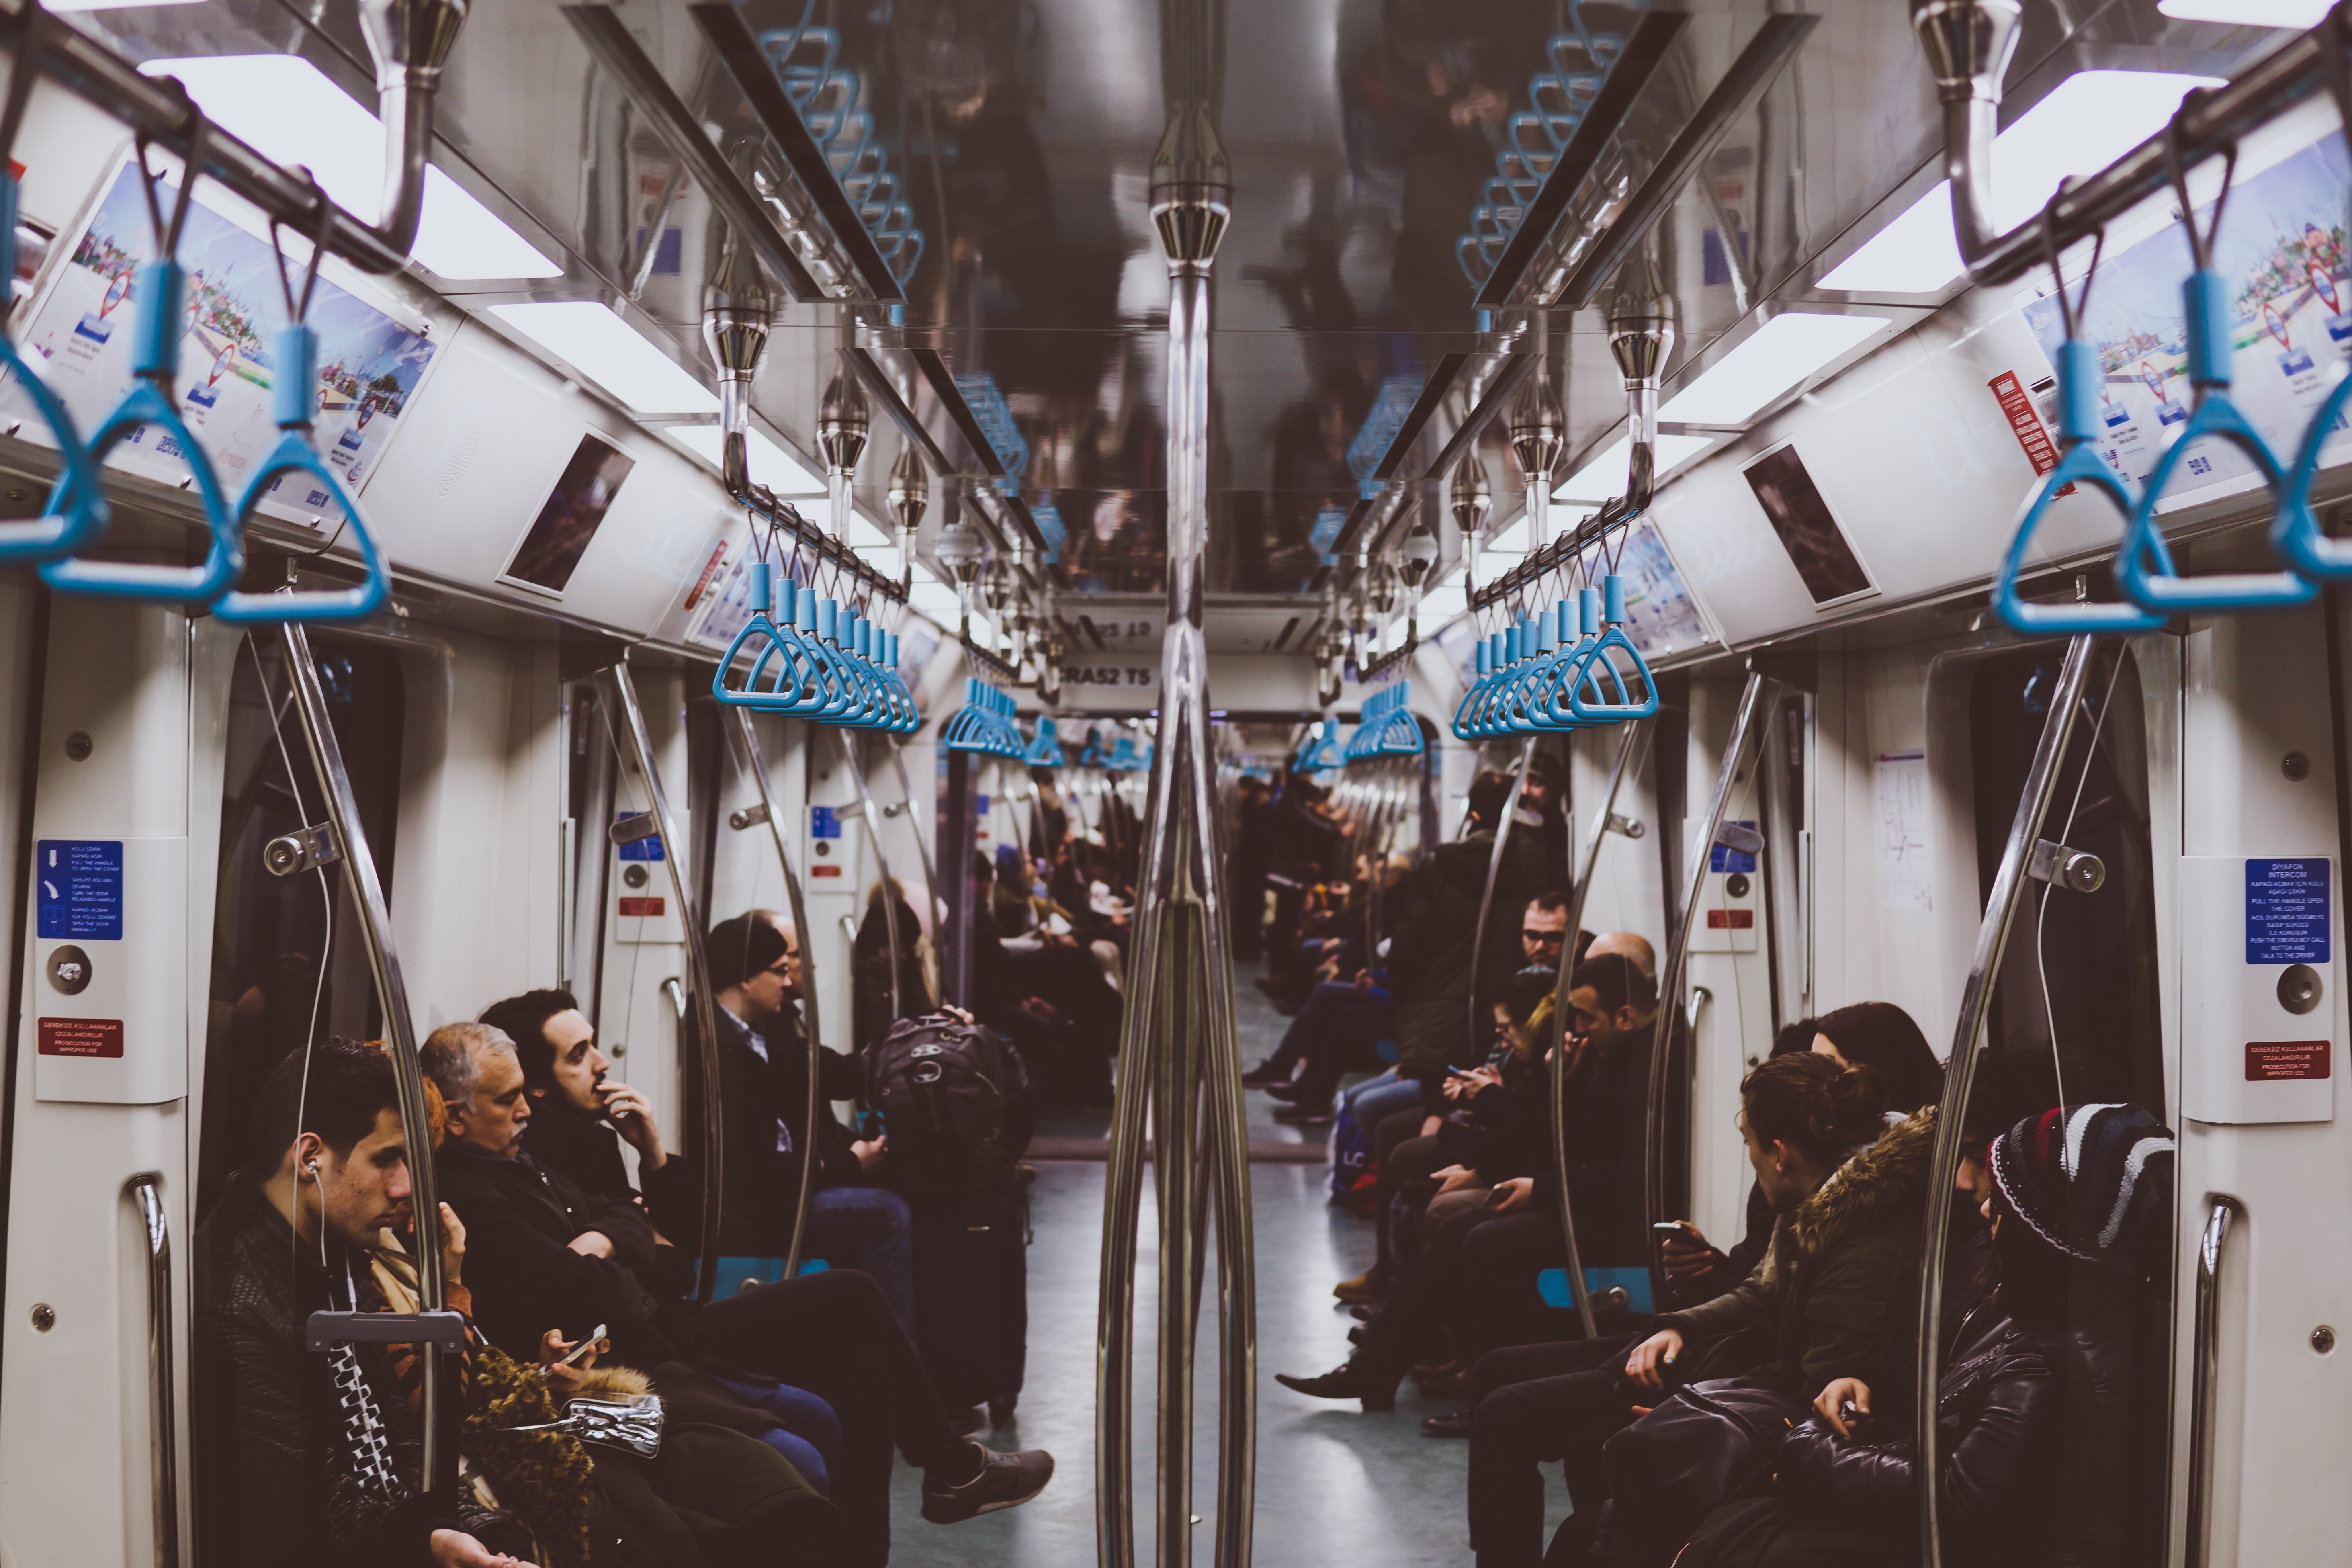 The interior of a subway train in Istanbul